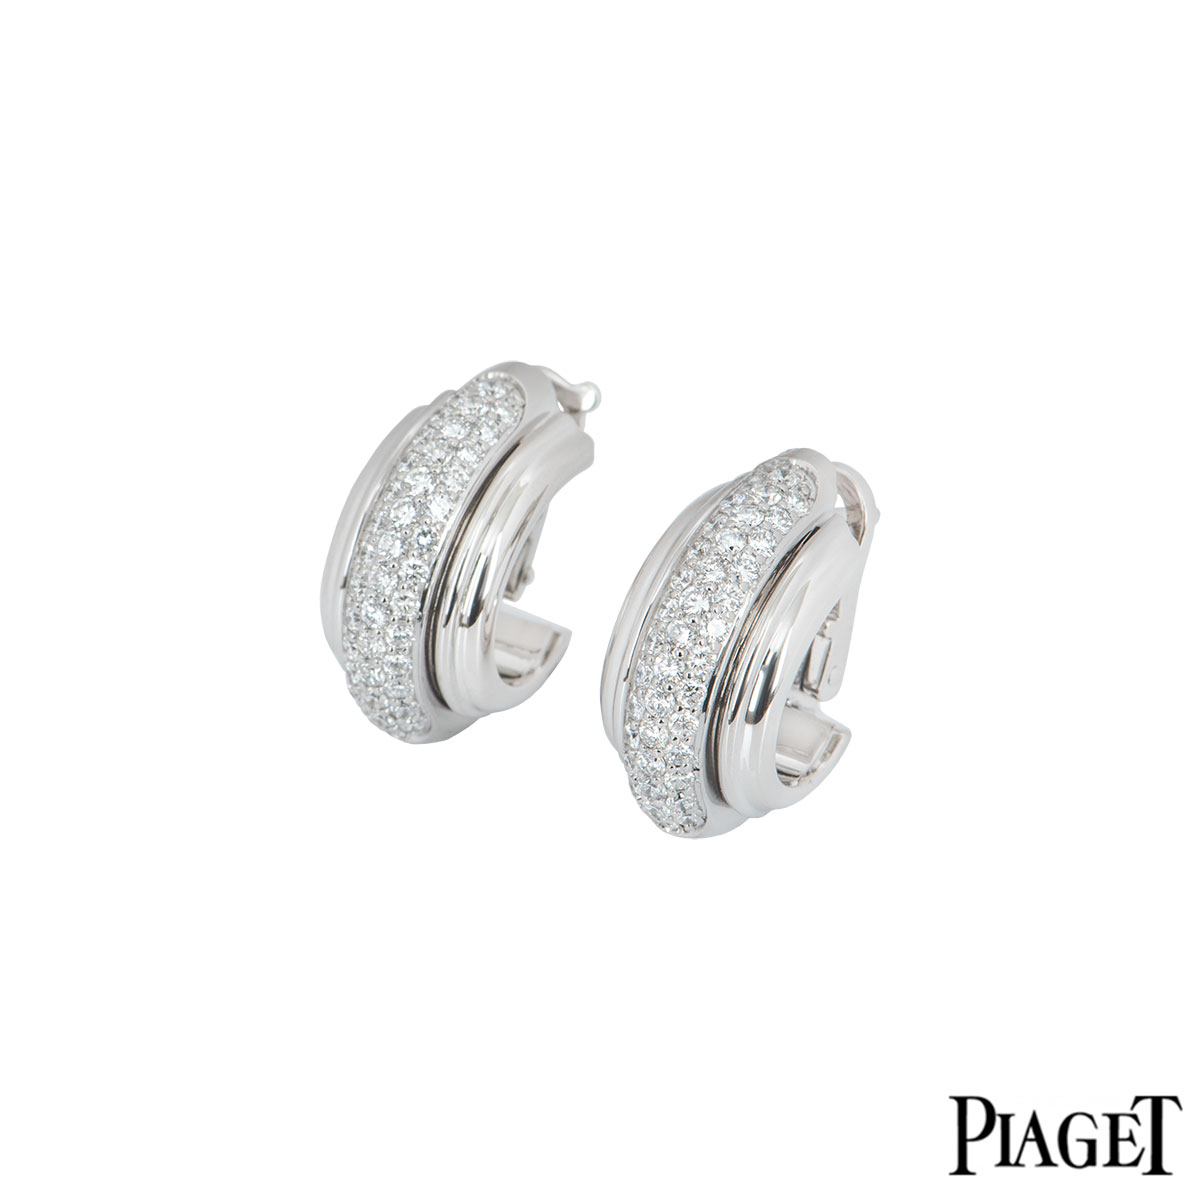 Piaget White Gold Diamond Possession Earrings